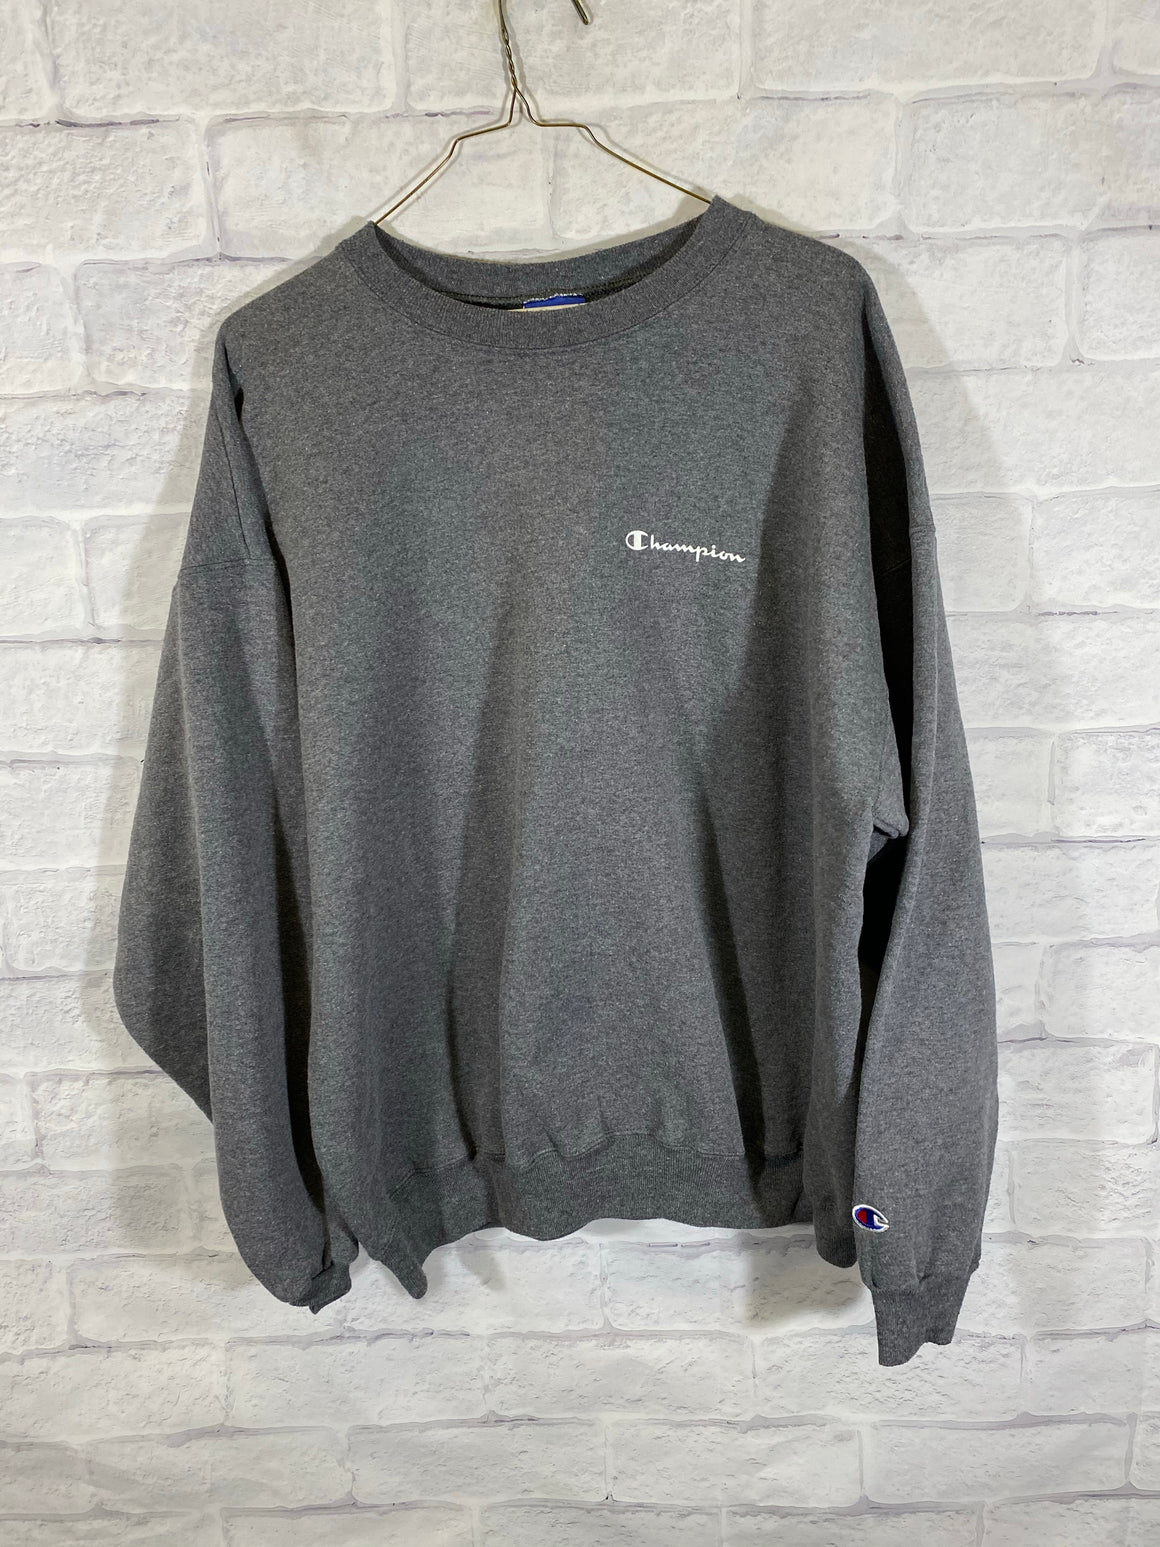 Champion grey cruenck sweater